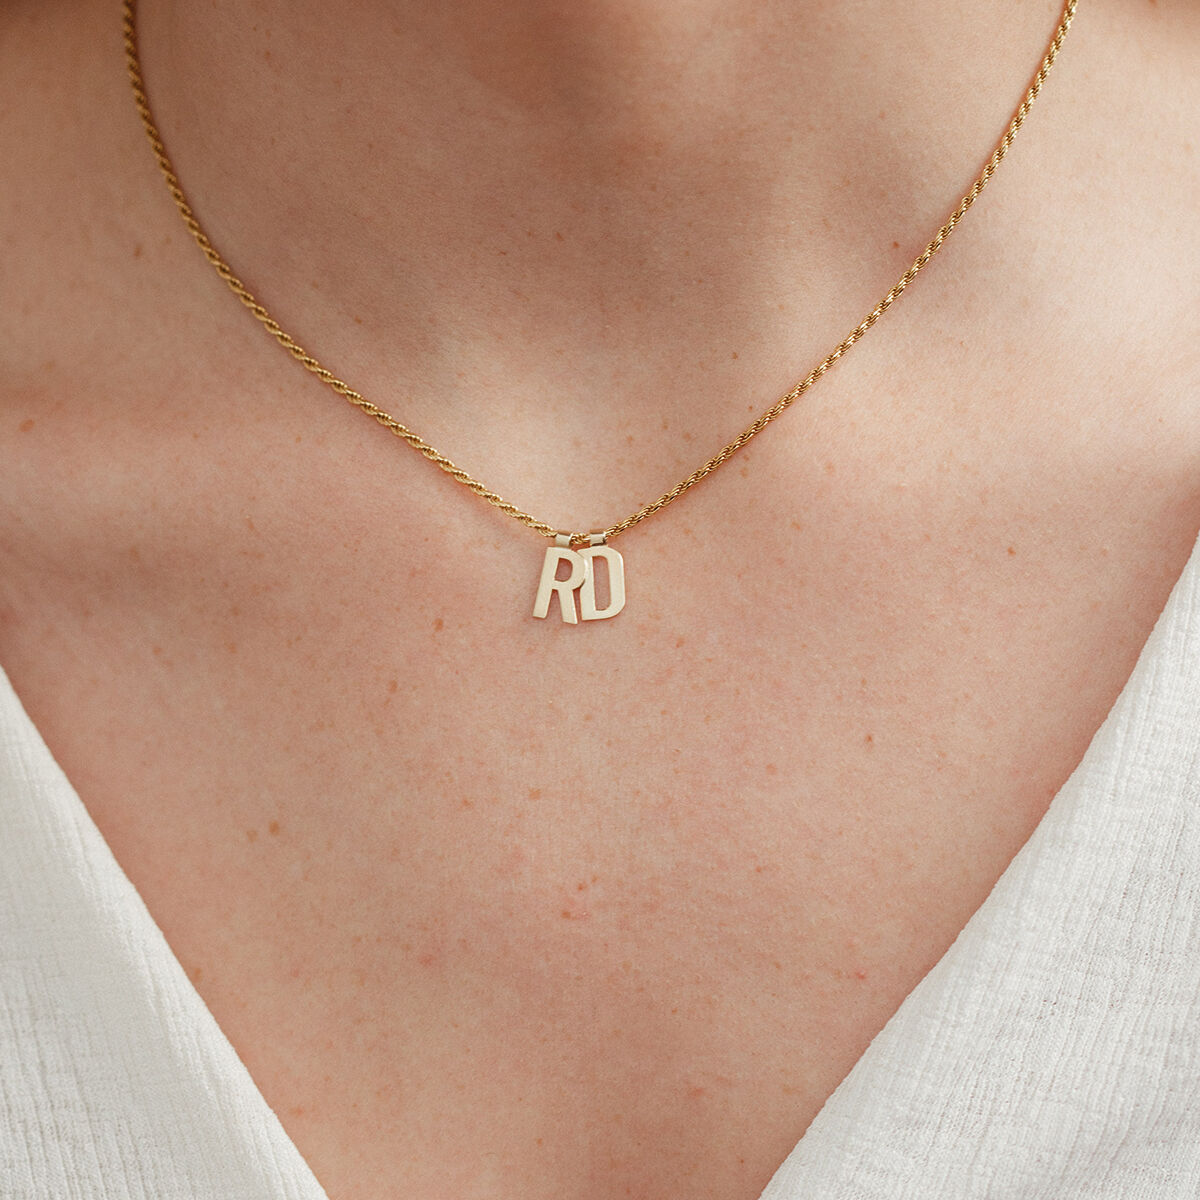 Ruby Rope Letter Necklace goud RD model